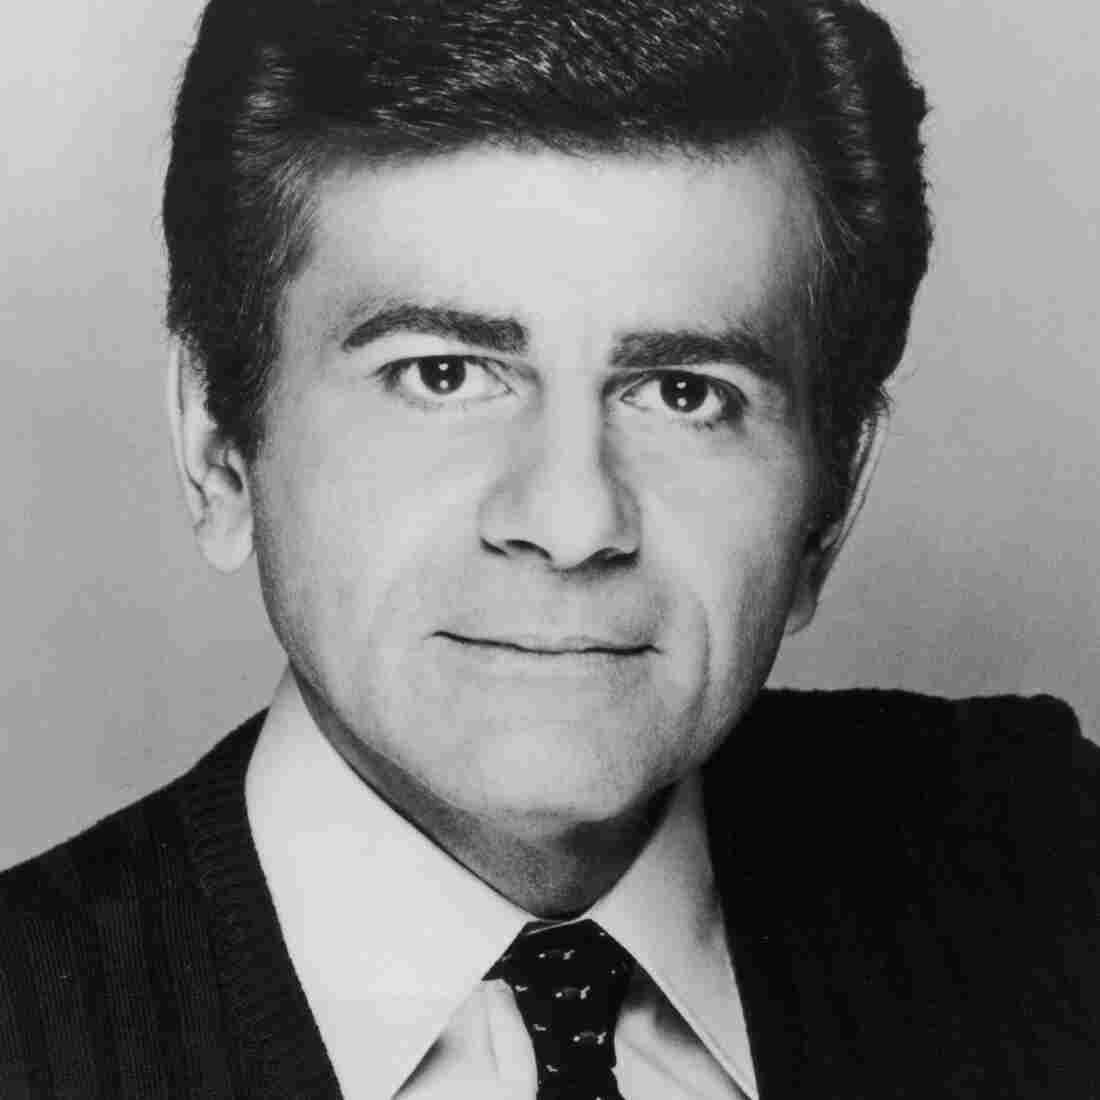 Casey Kasem, An Iconic Voice Of American Radio